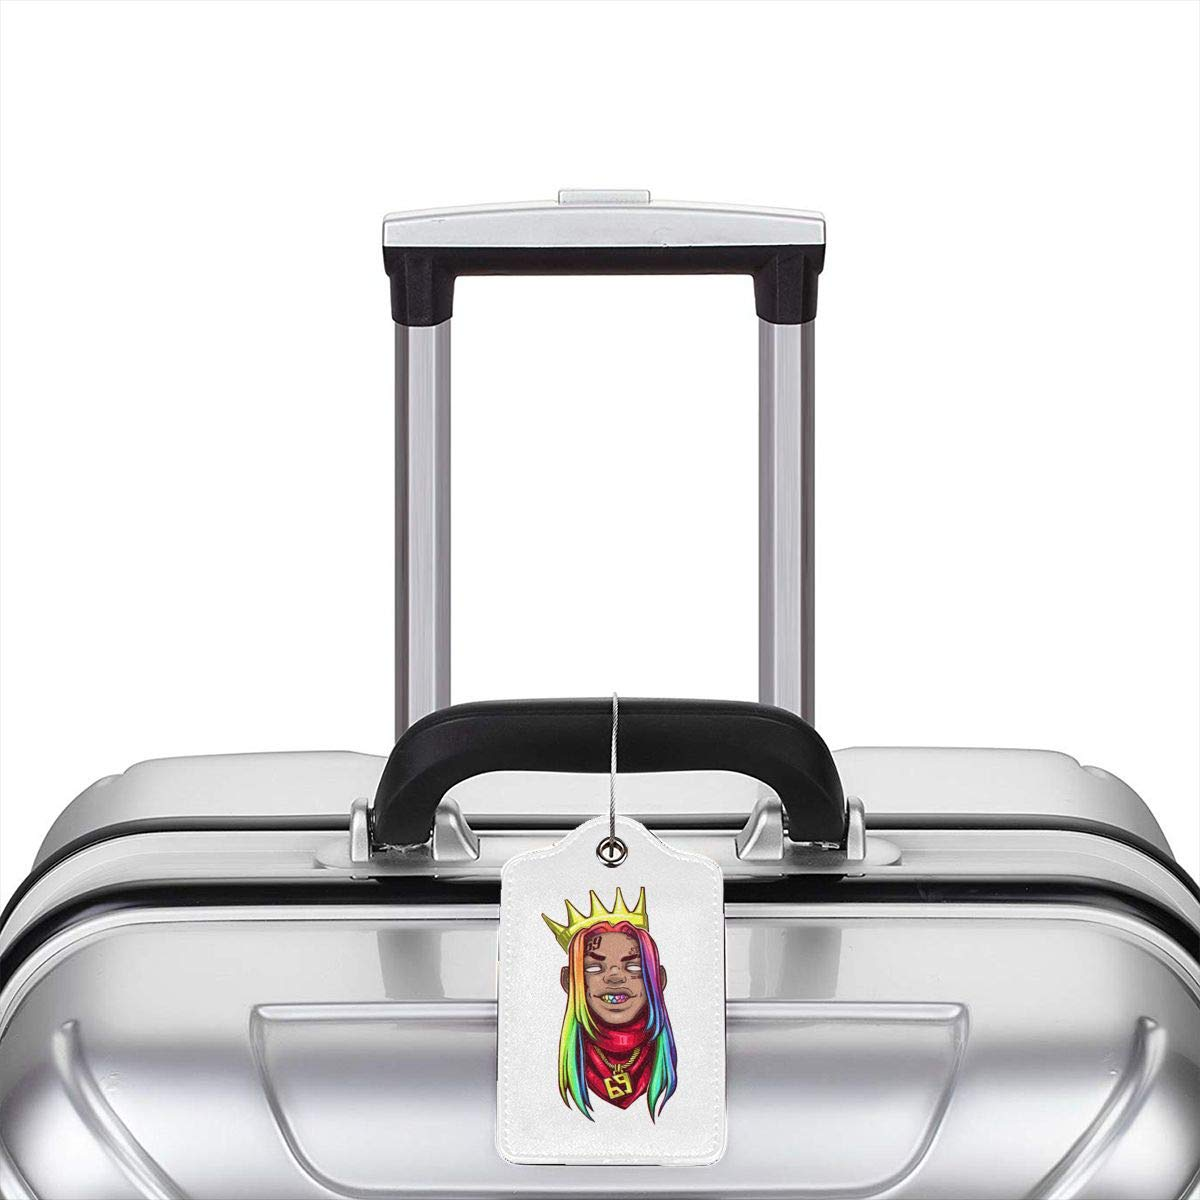 6ix9ine Logo Leather Luggage Tag Travel ID Label For Baggage Suitcase